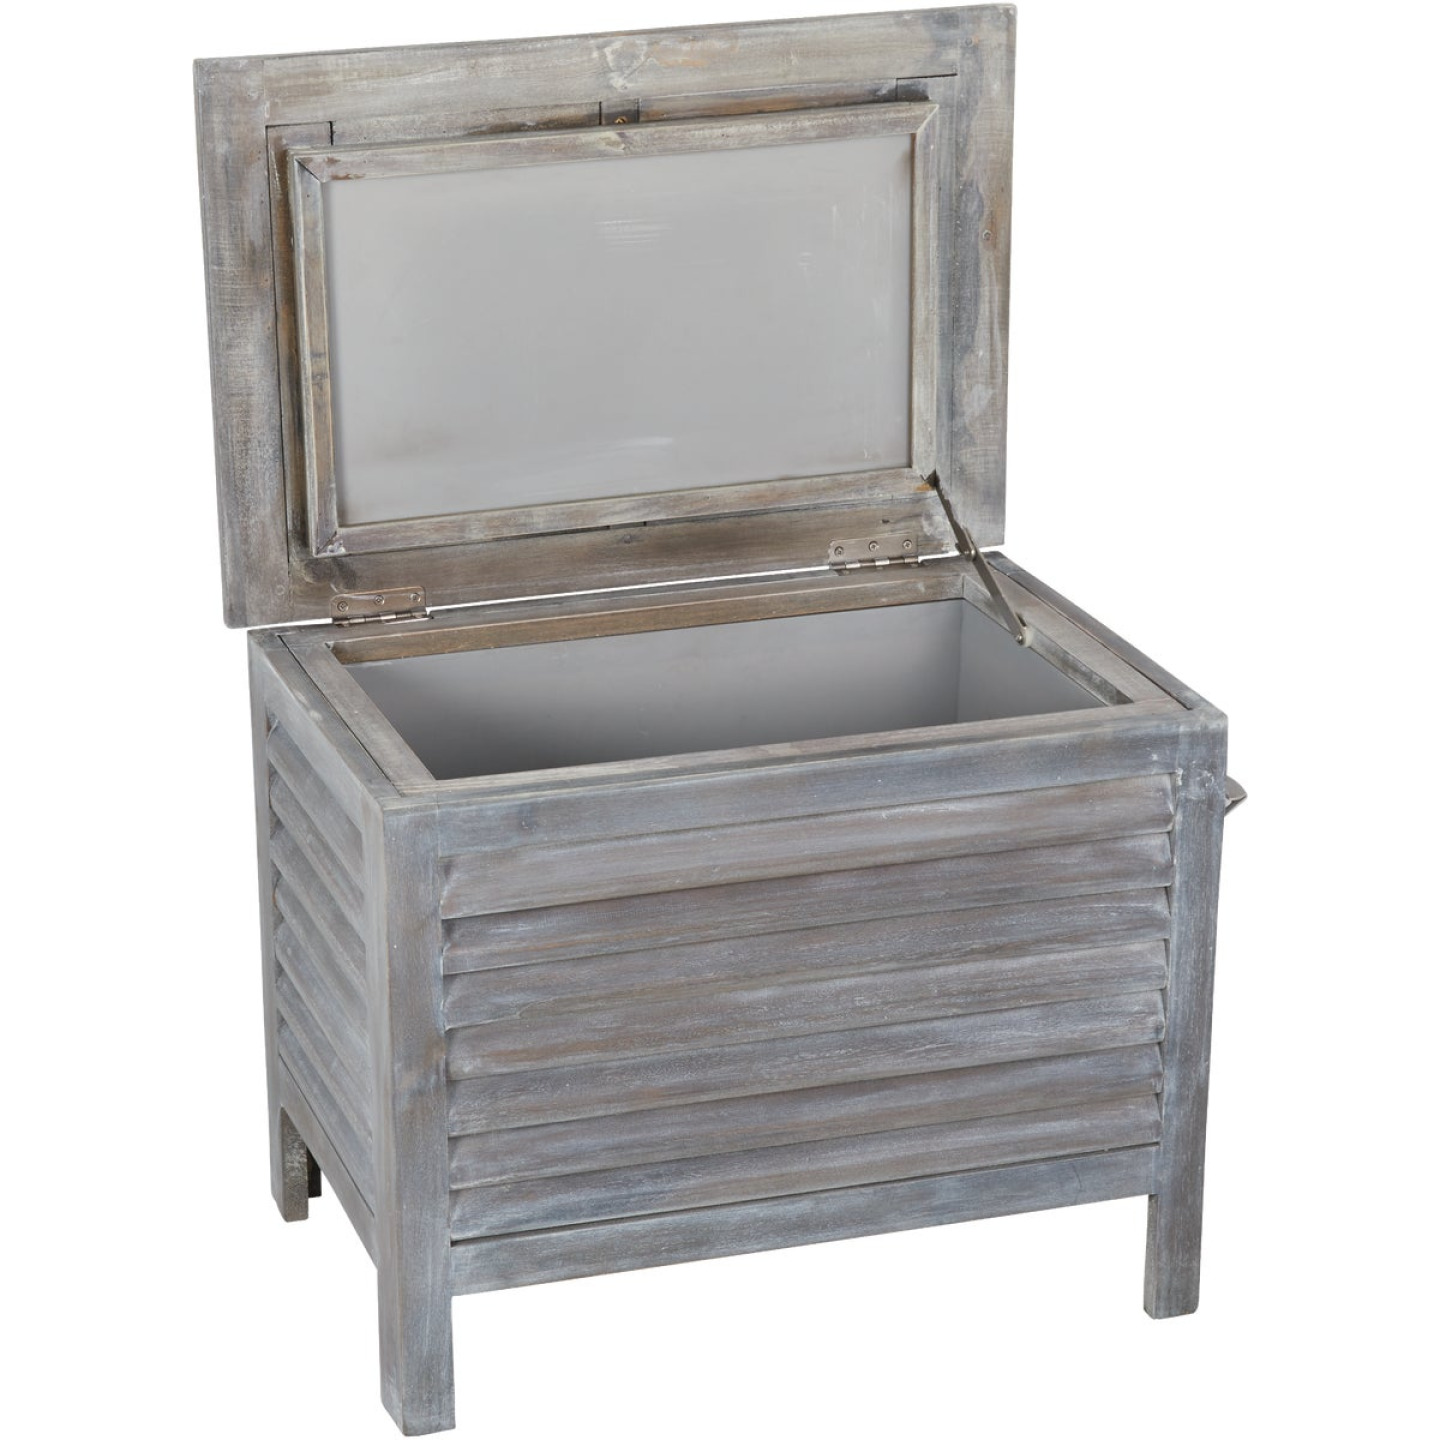 Leigh Country 56 Qt. Acacia Wood Cooler, Gray Image 6